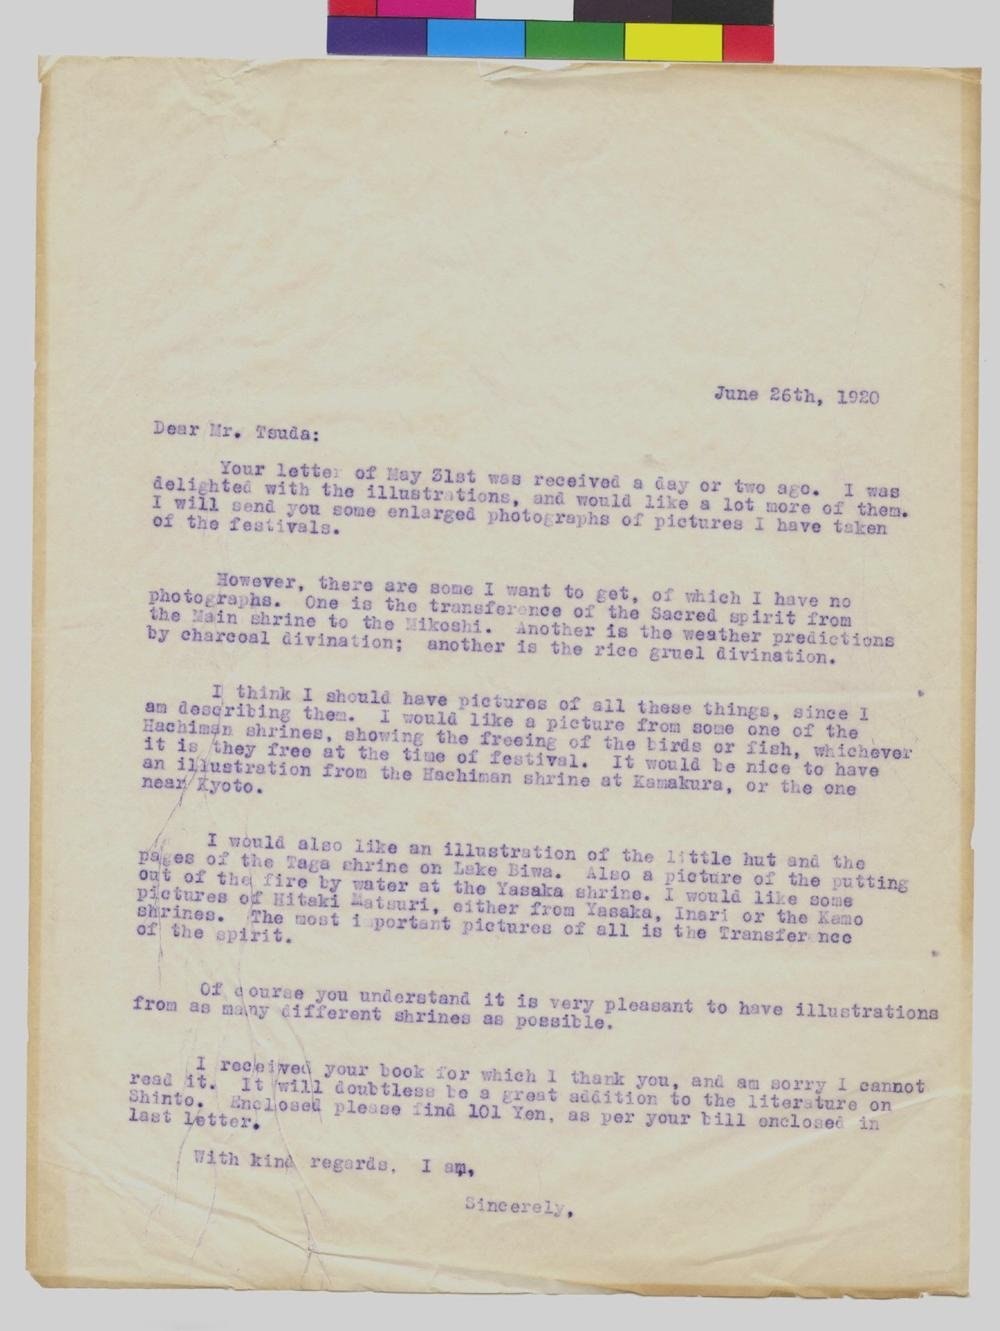 Letter To Mr Noritake Tsuda From Mrs Murray Warner Dated June 26 1920